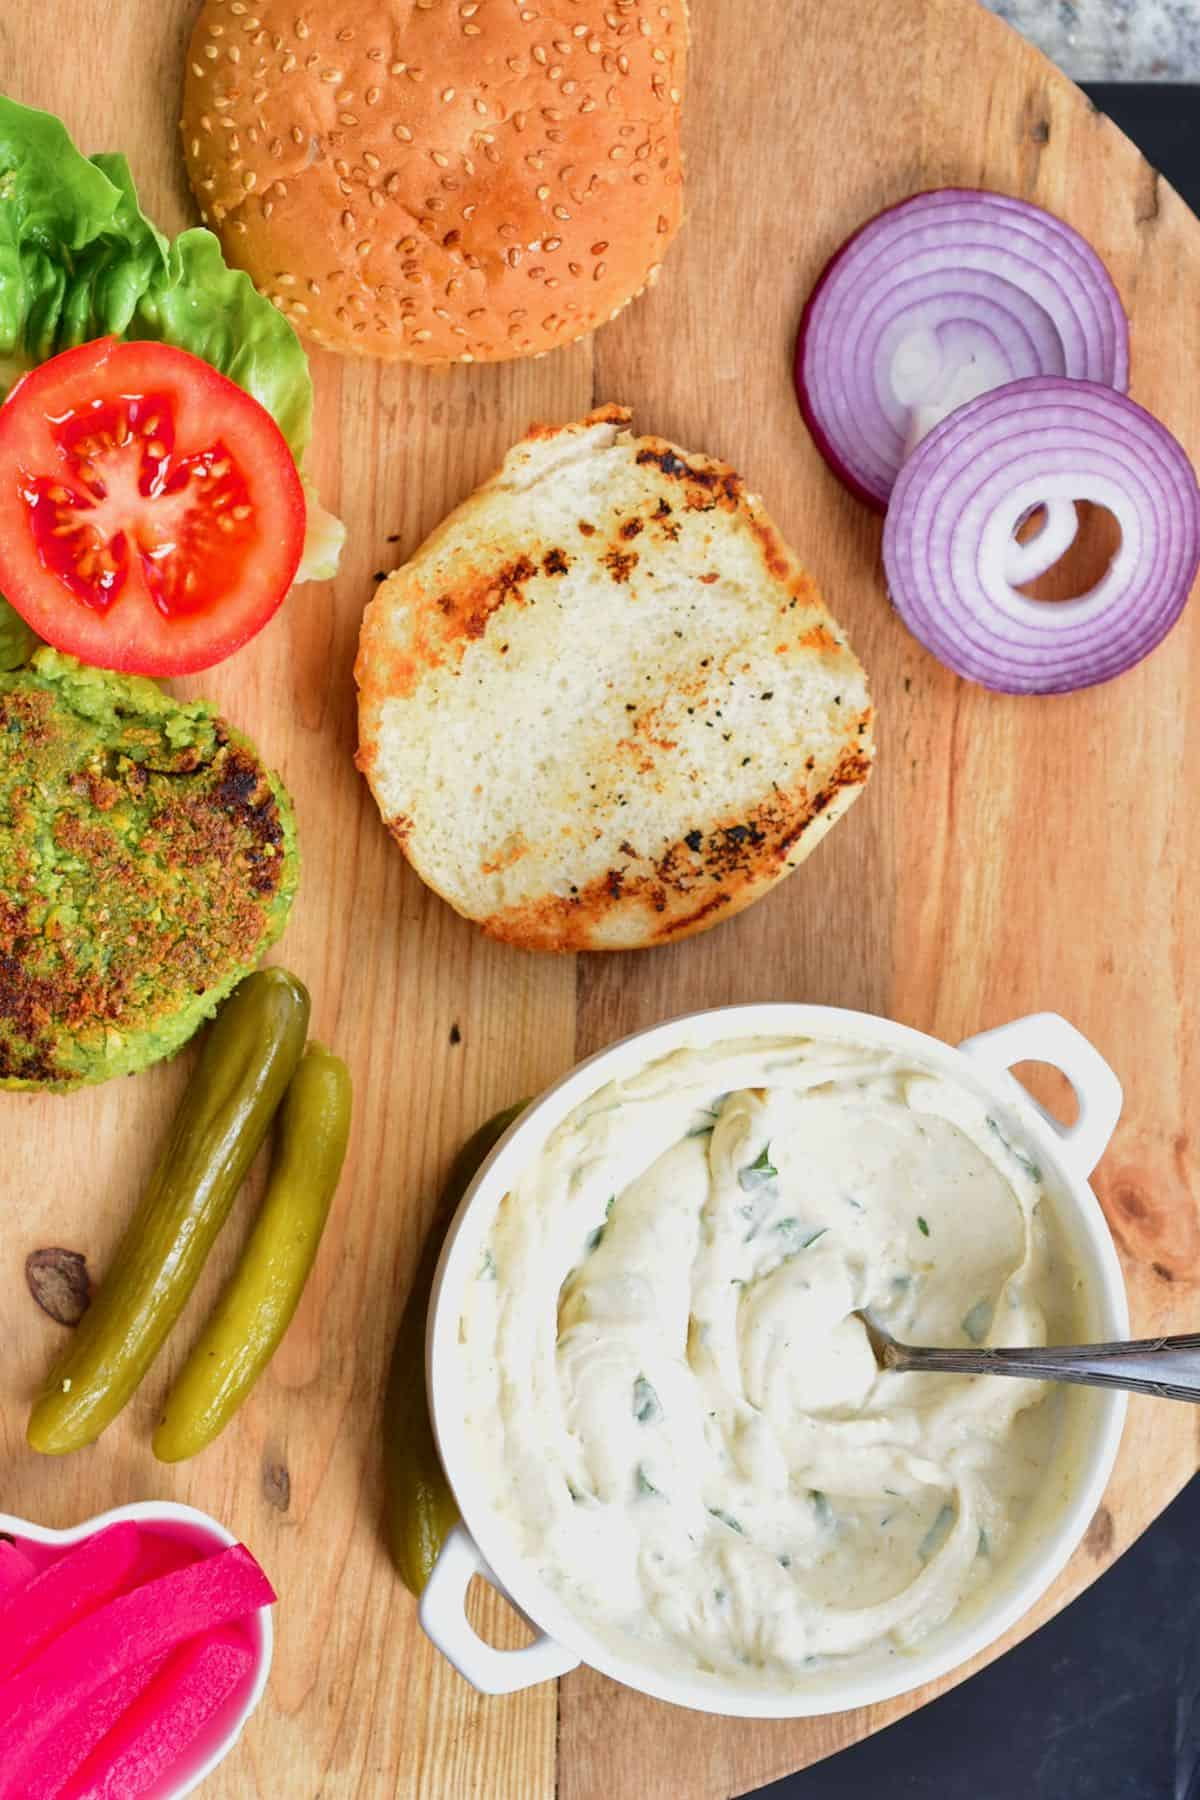 Tahini sauce in a bowl and burger ingredients on a chopping board